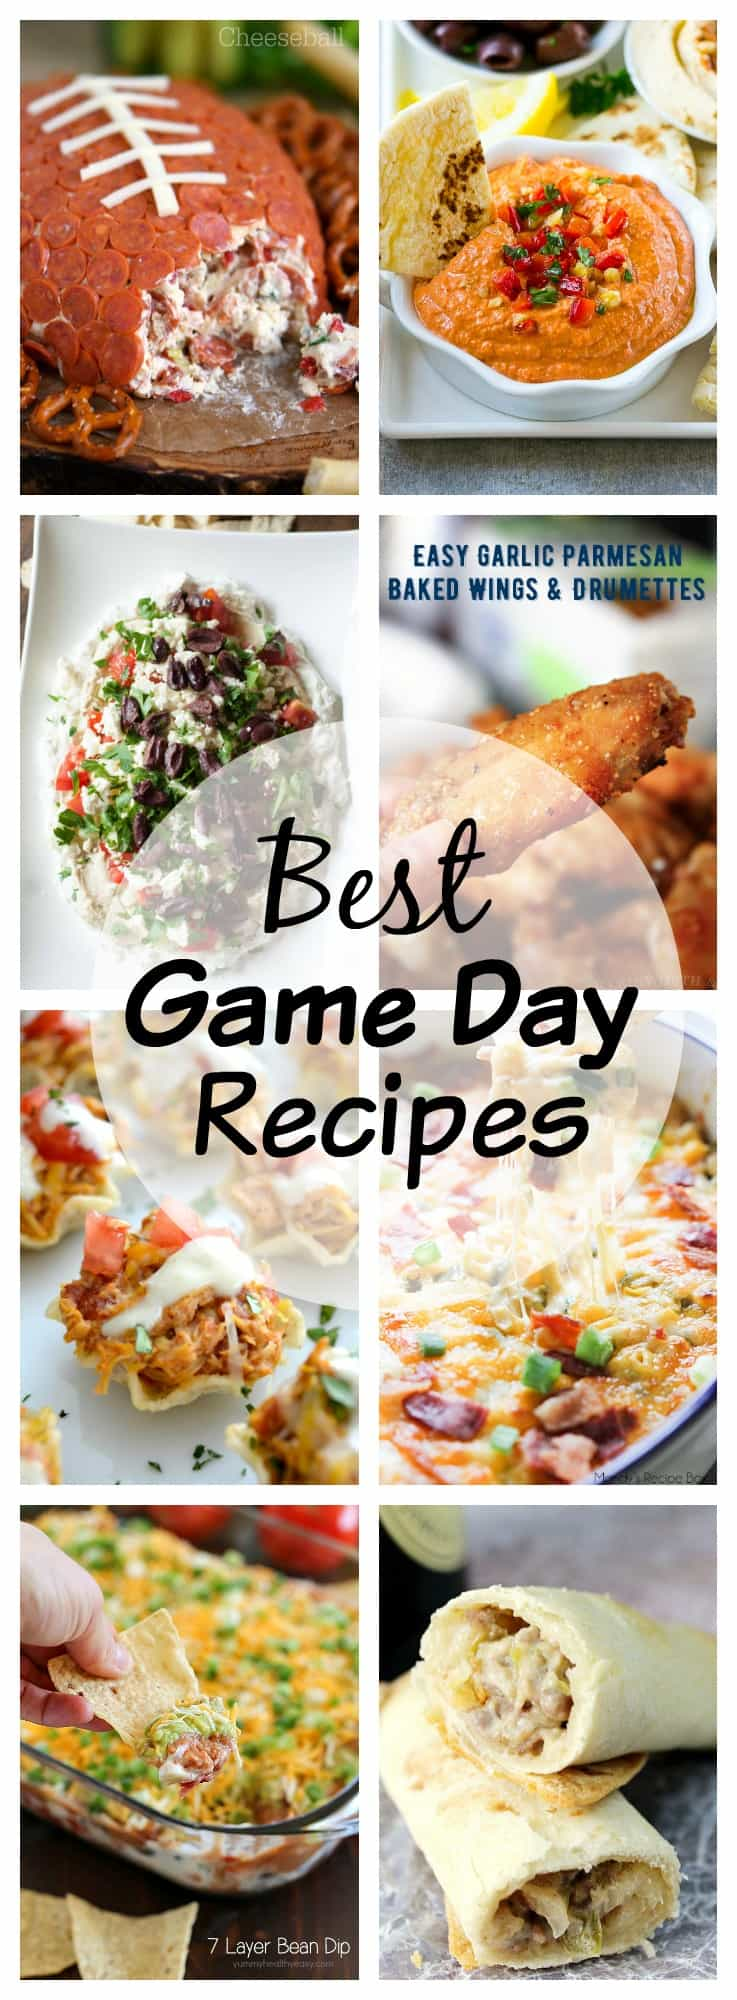 Best Game Day Recipes - a collection of delicious wings, dips, wraps and more to make sure no one goes hungry while watching the big games.